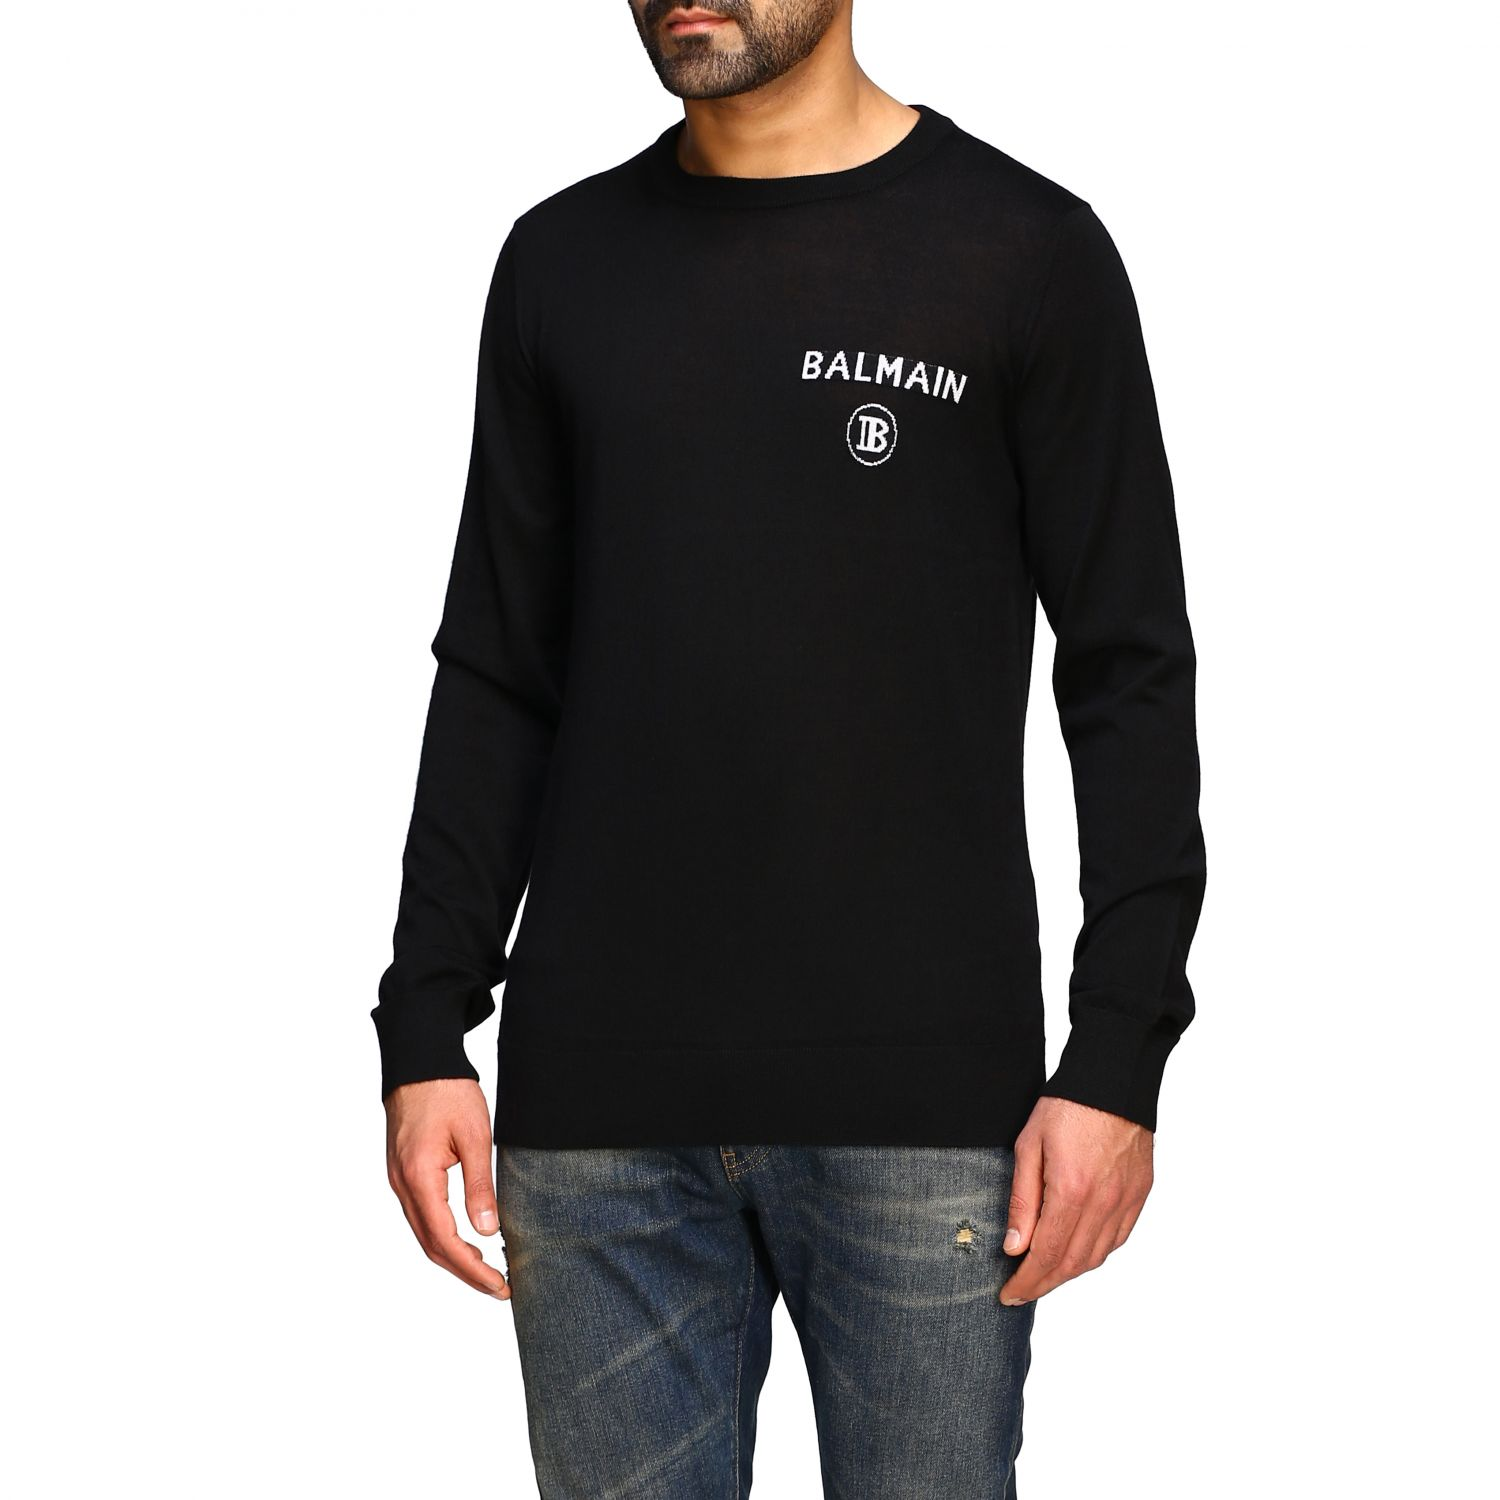 Sweater Balmain: Balmain cashmere crewneck sweater with logo black 4